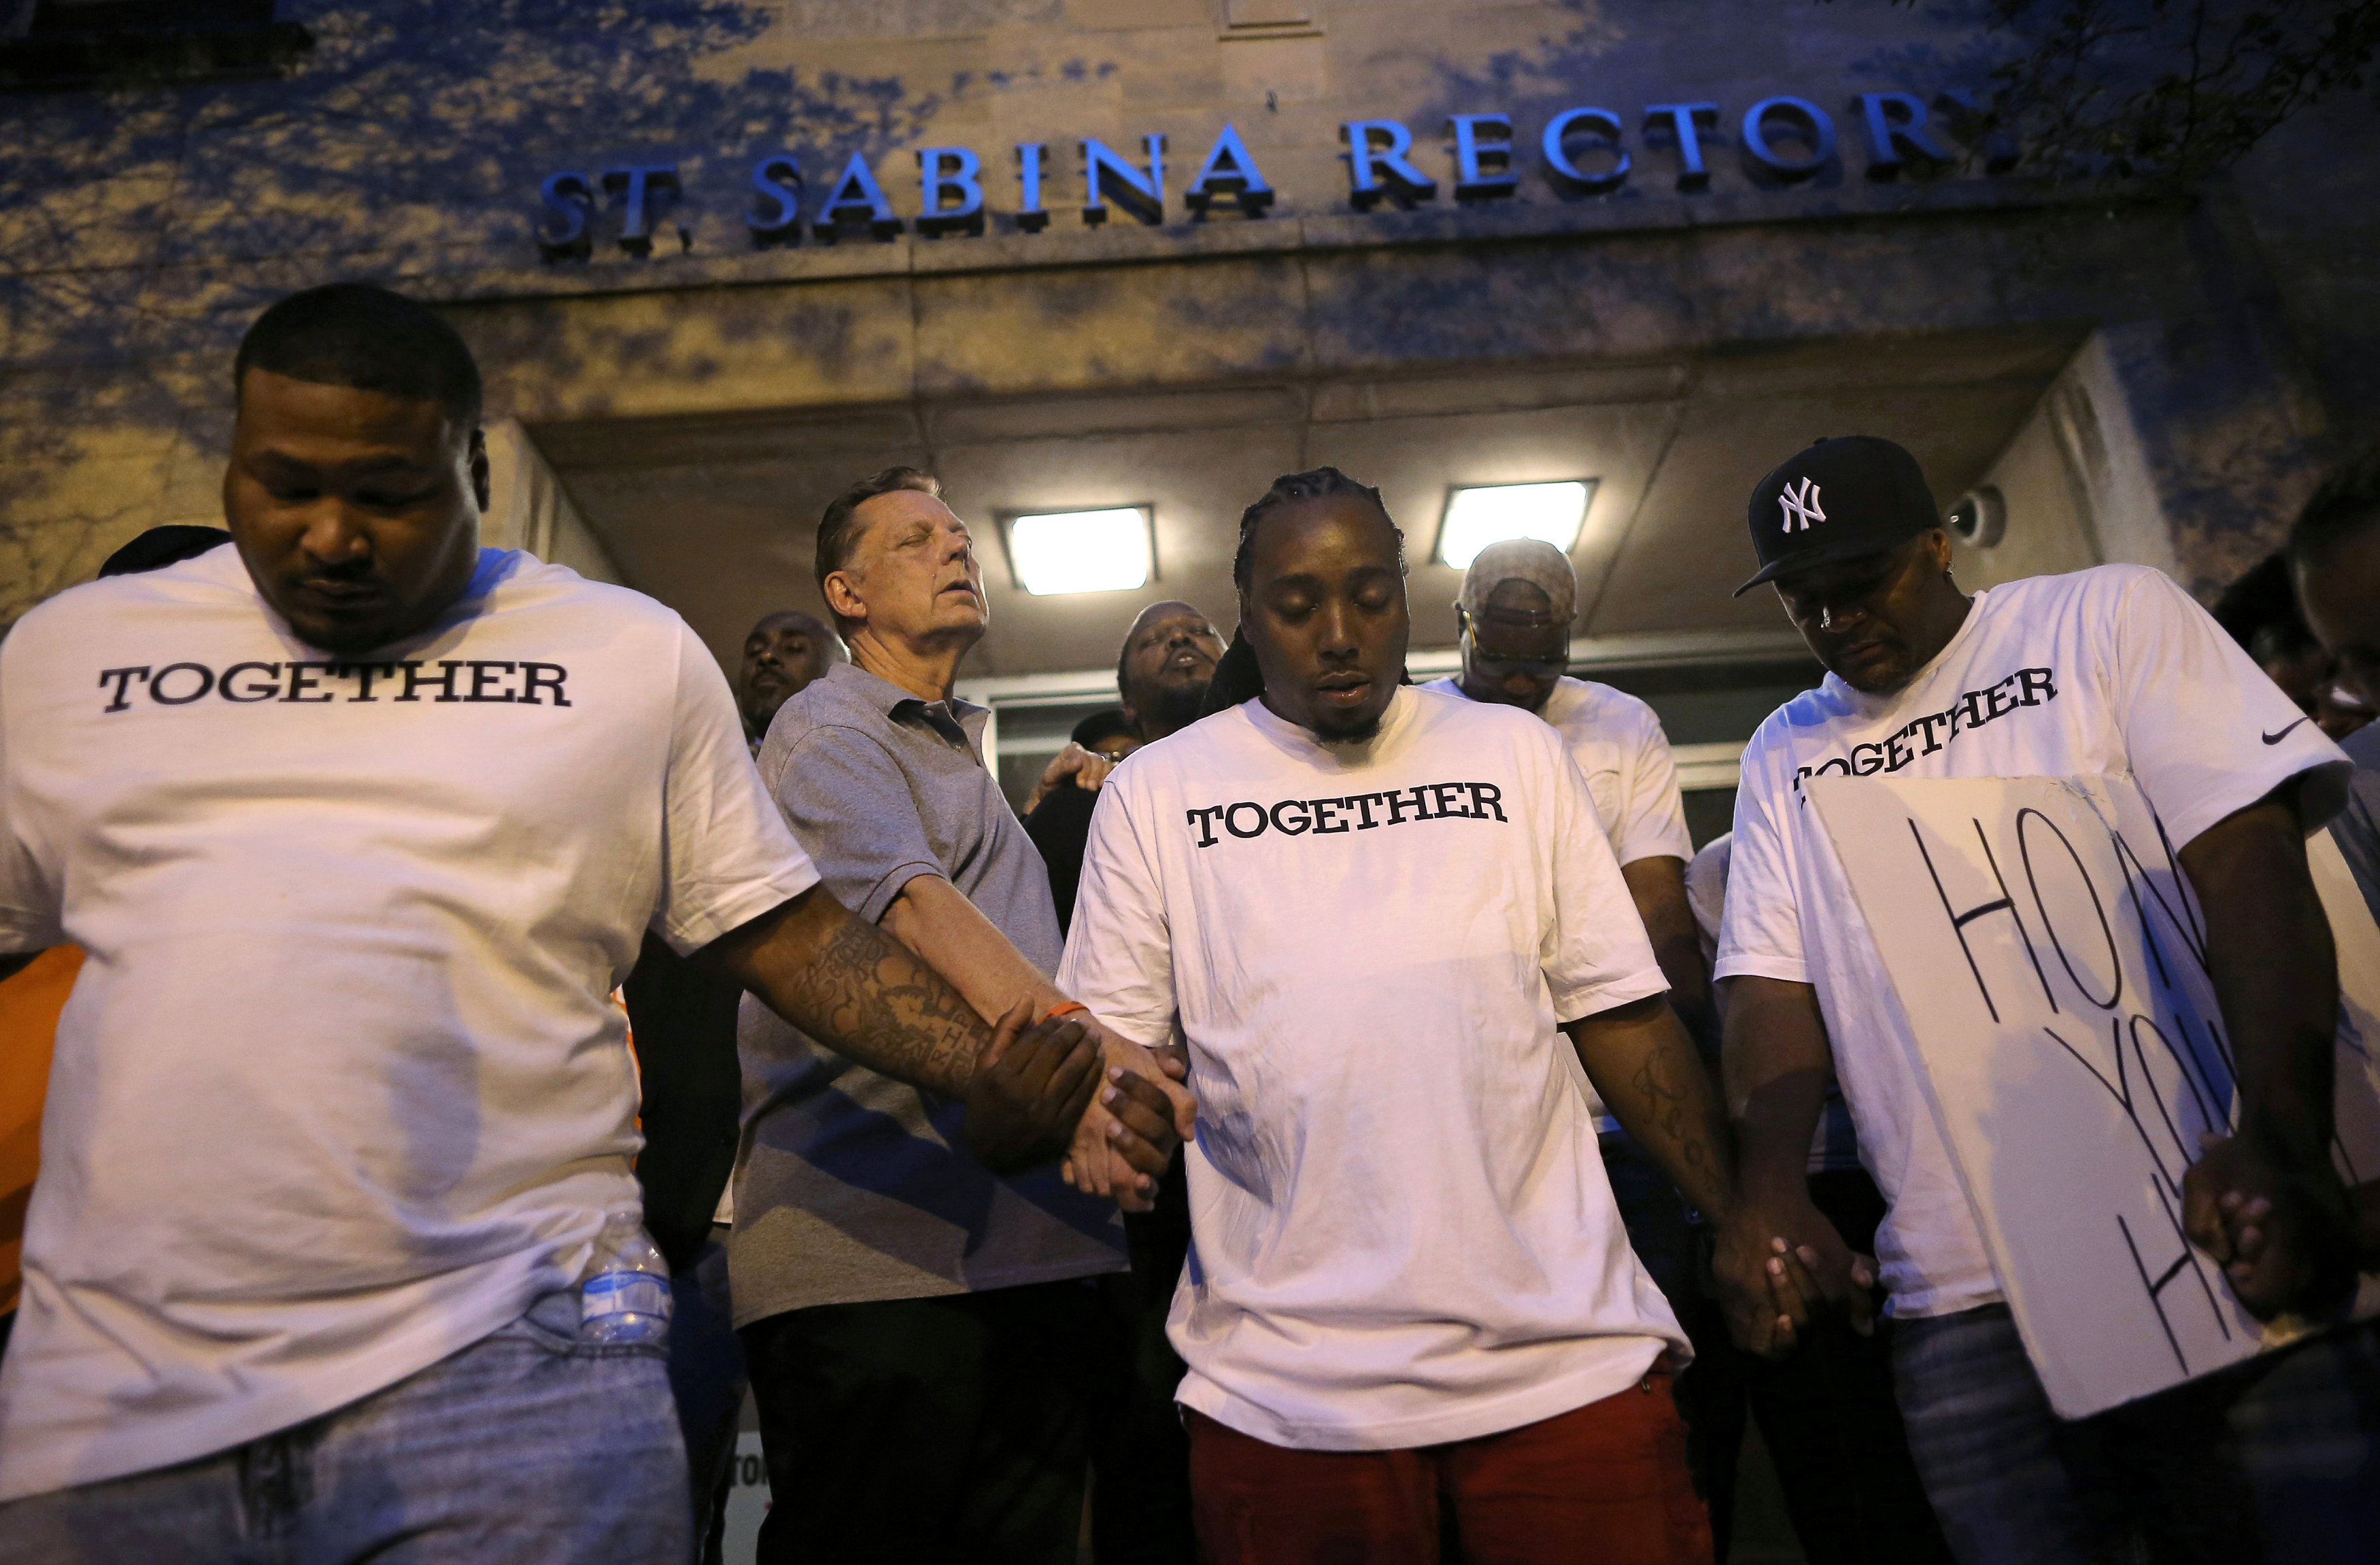 Father Michael Pfleger (2nd L) prays at Saint Sabina Church before taking part in a weekly night-time peace march through the streets of a South Side neighborhood in Chicago, Illinois,